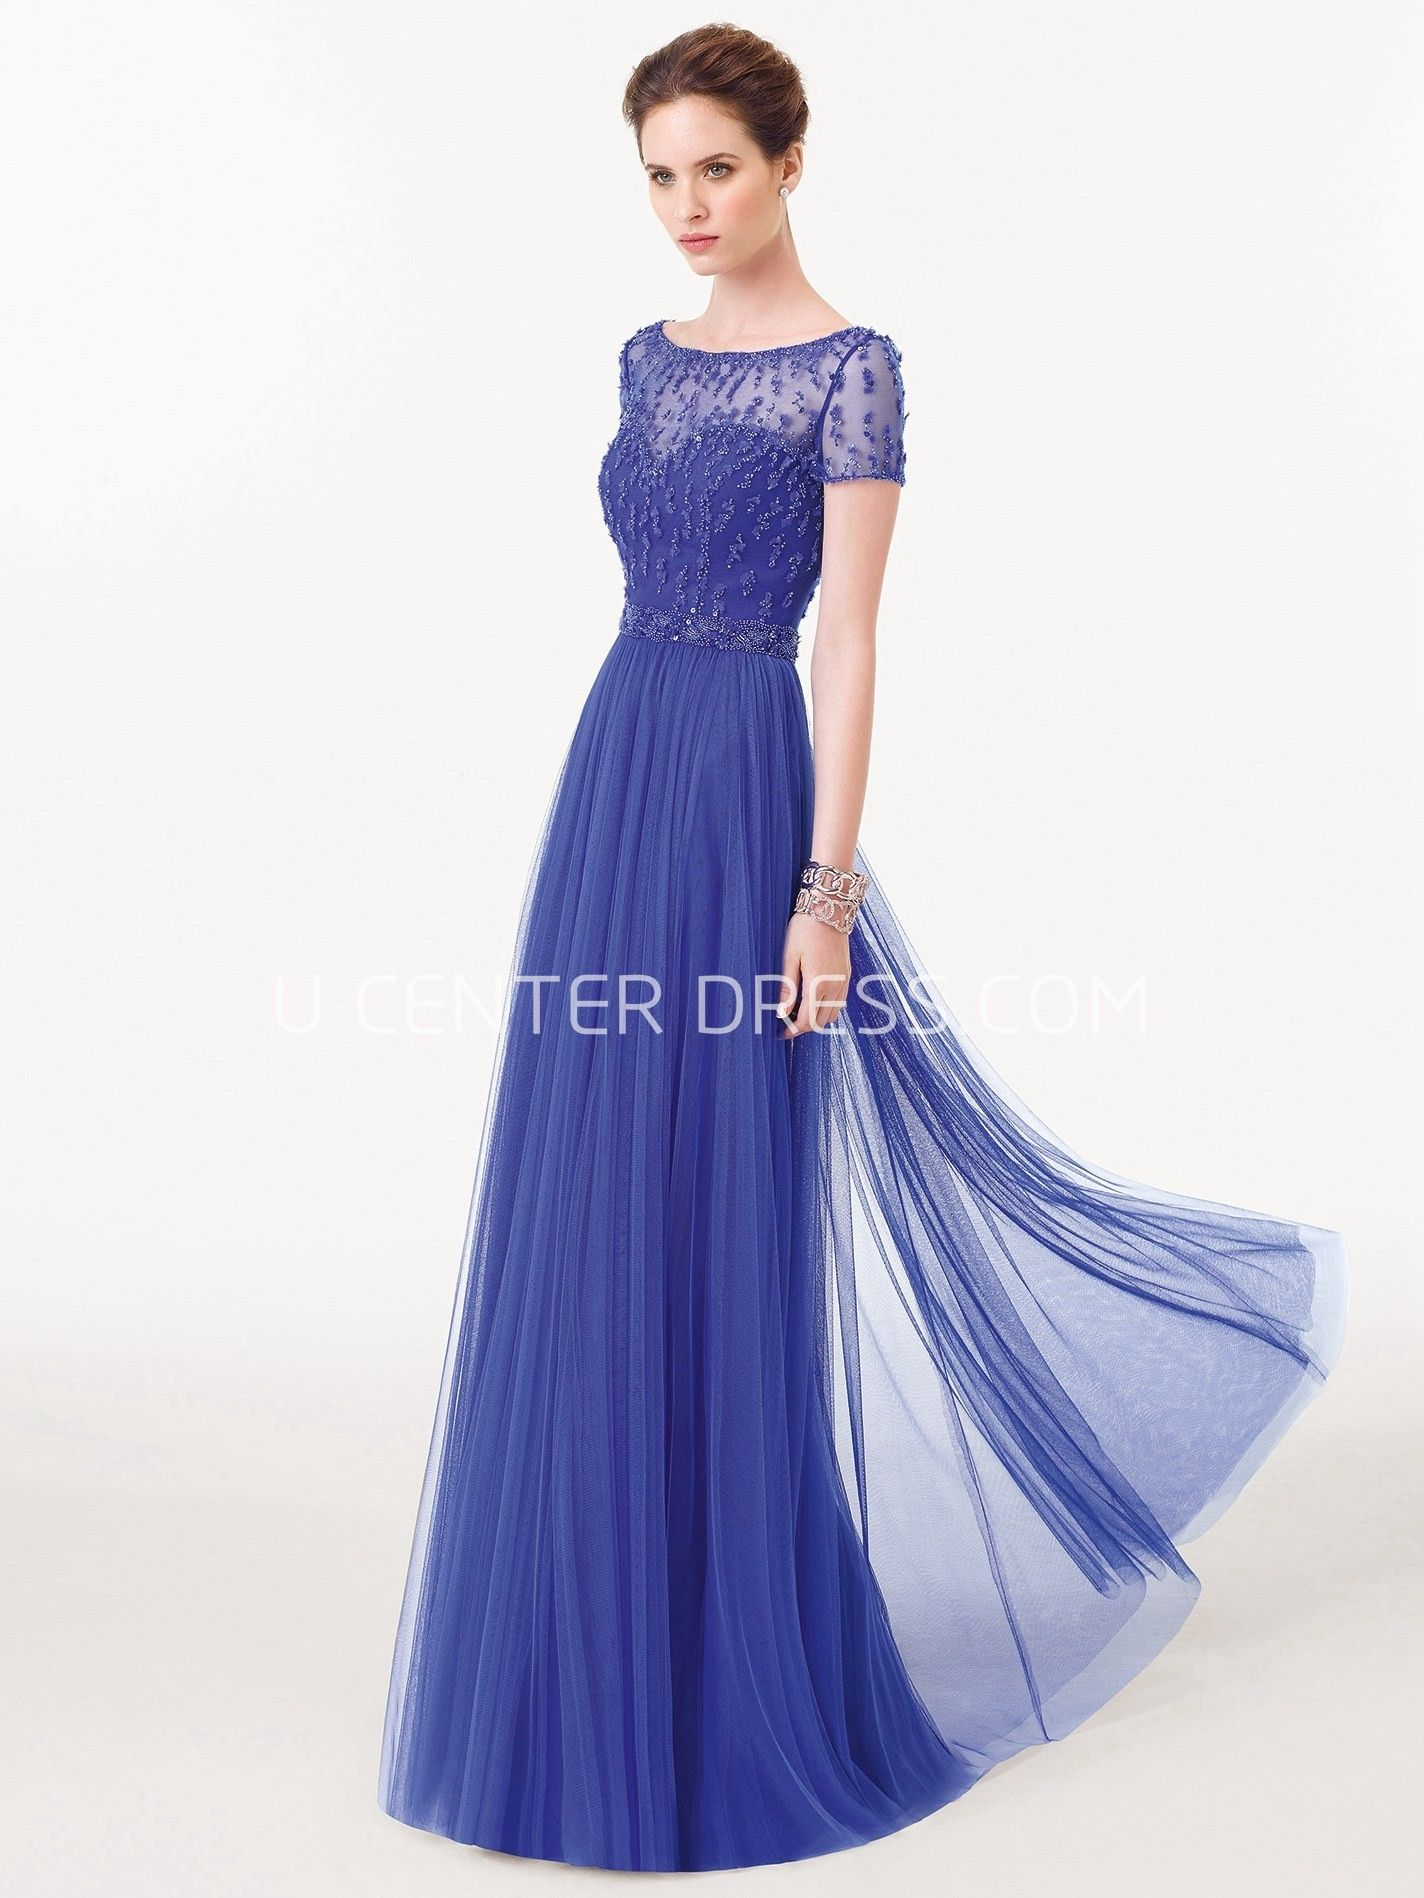 Bateau Neck Beaded Short Sleeve Tulle Prom Dress | Tulle prom dress ...